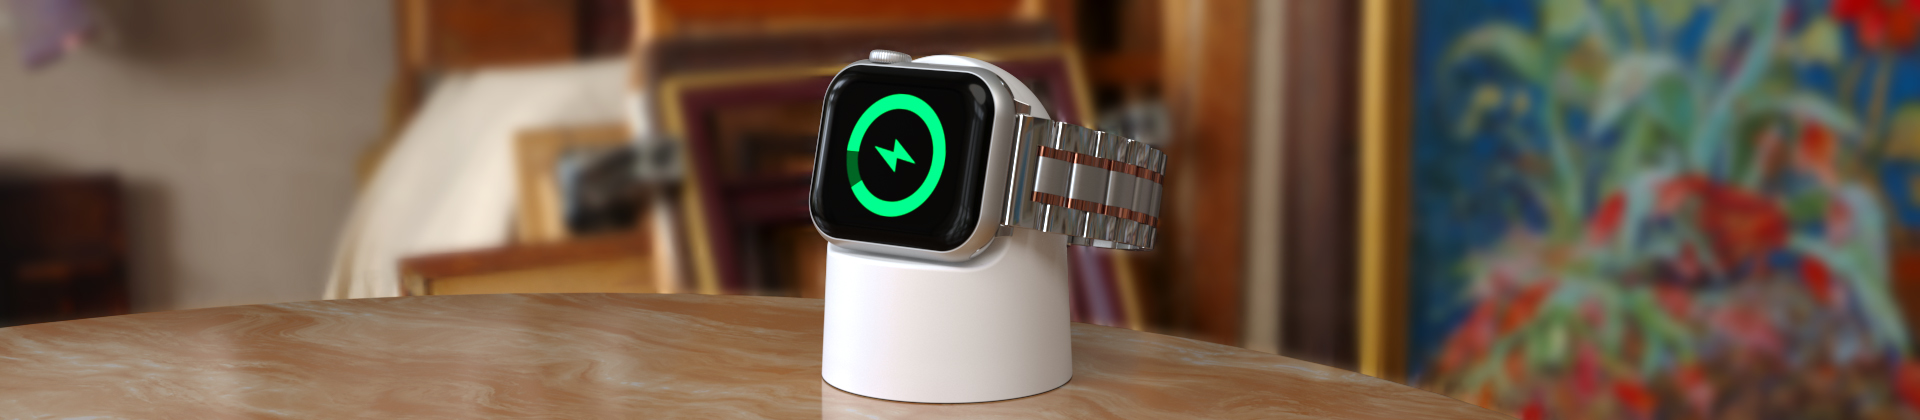 для Apple Watch